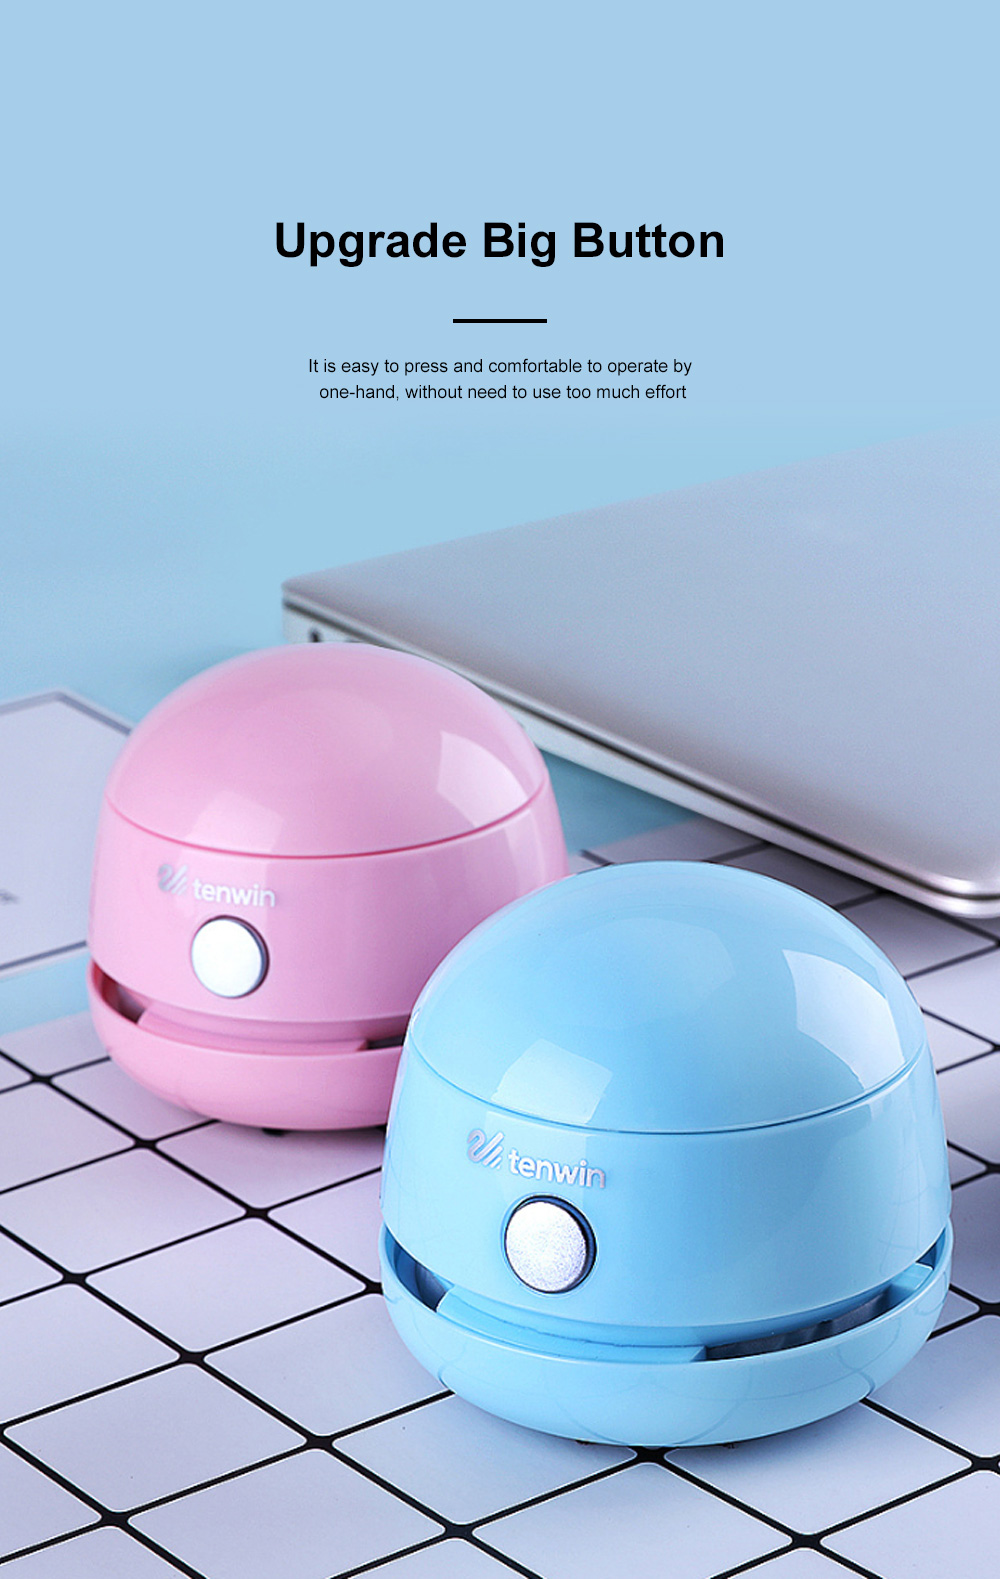 Mini Vacuum Cleaner Desktop Office Cleaner Easily Inhaled Paper Dust Suction Strong And Convenient 3